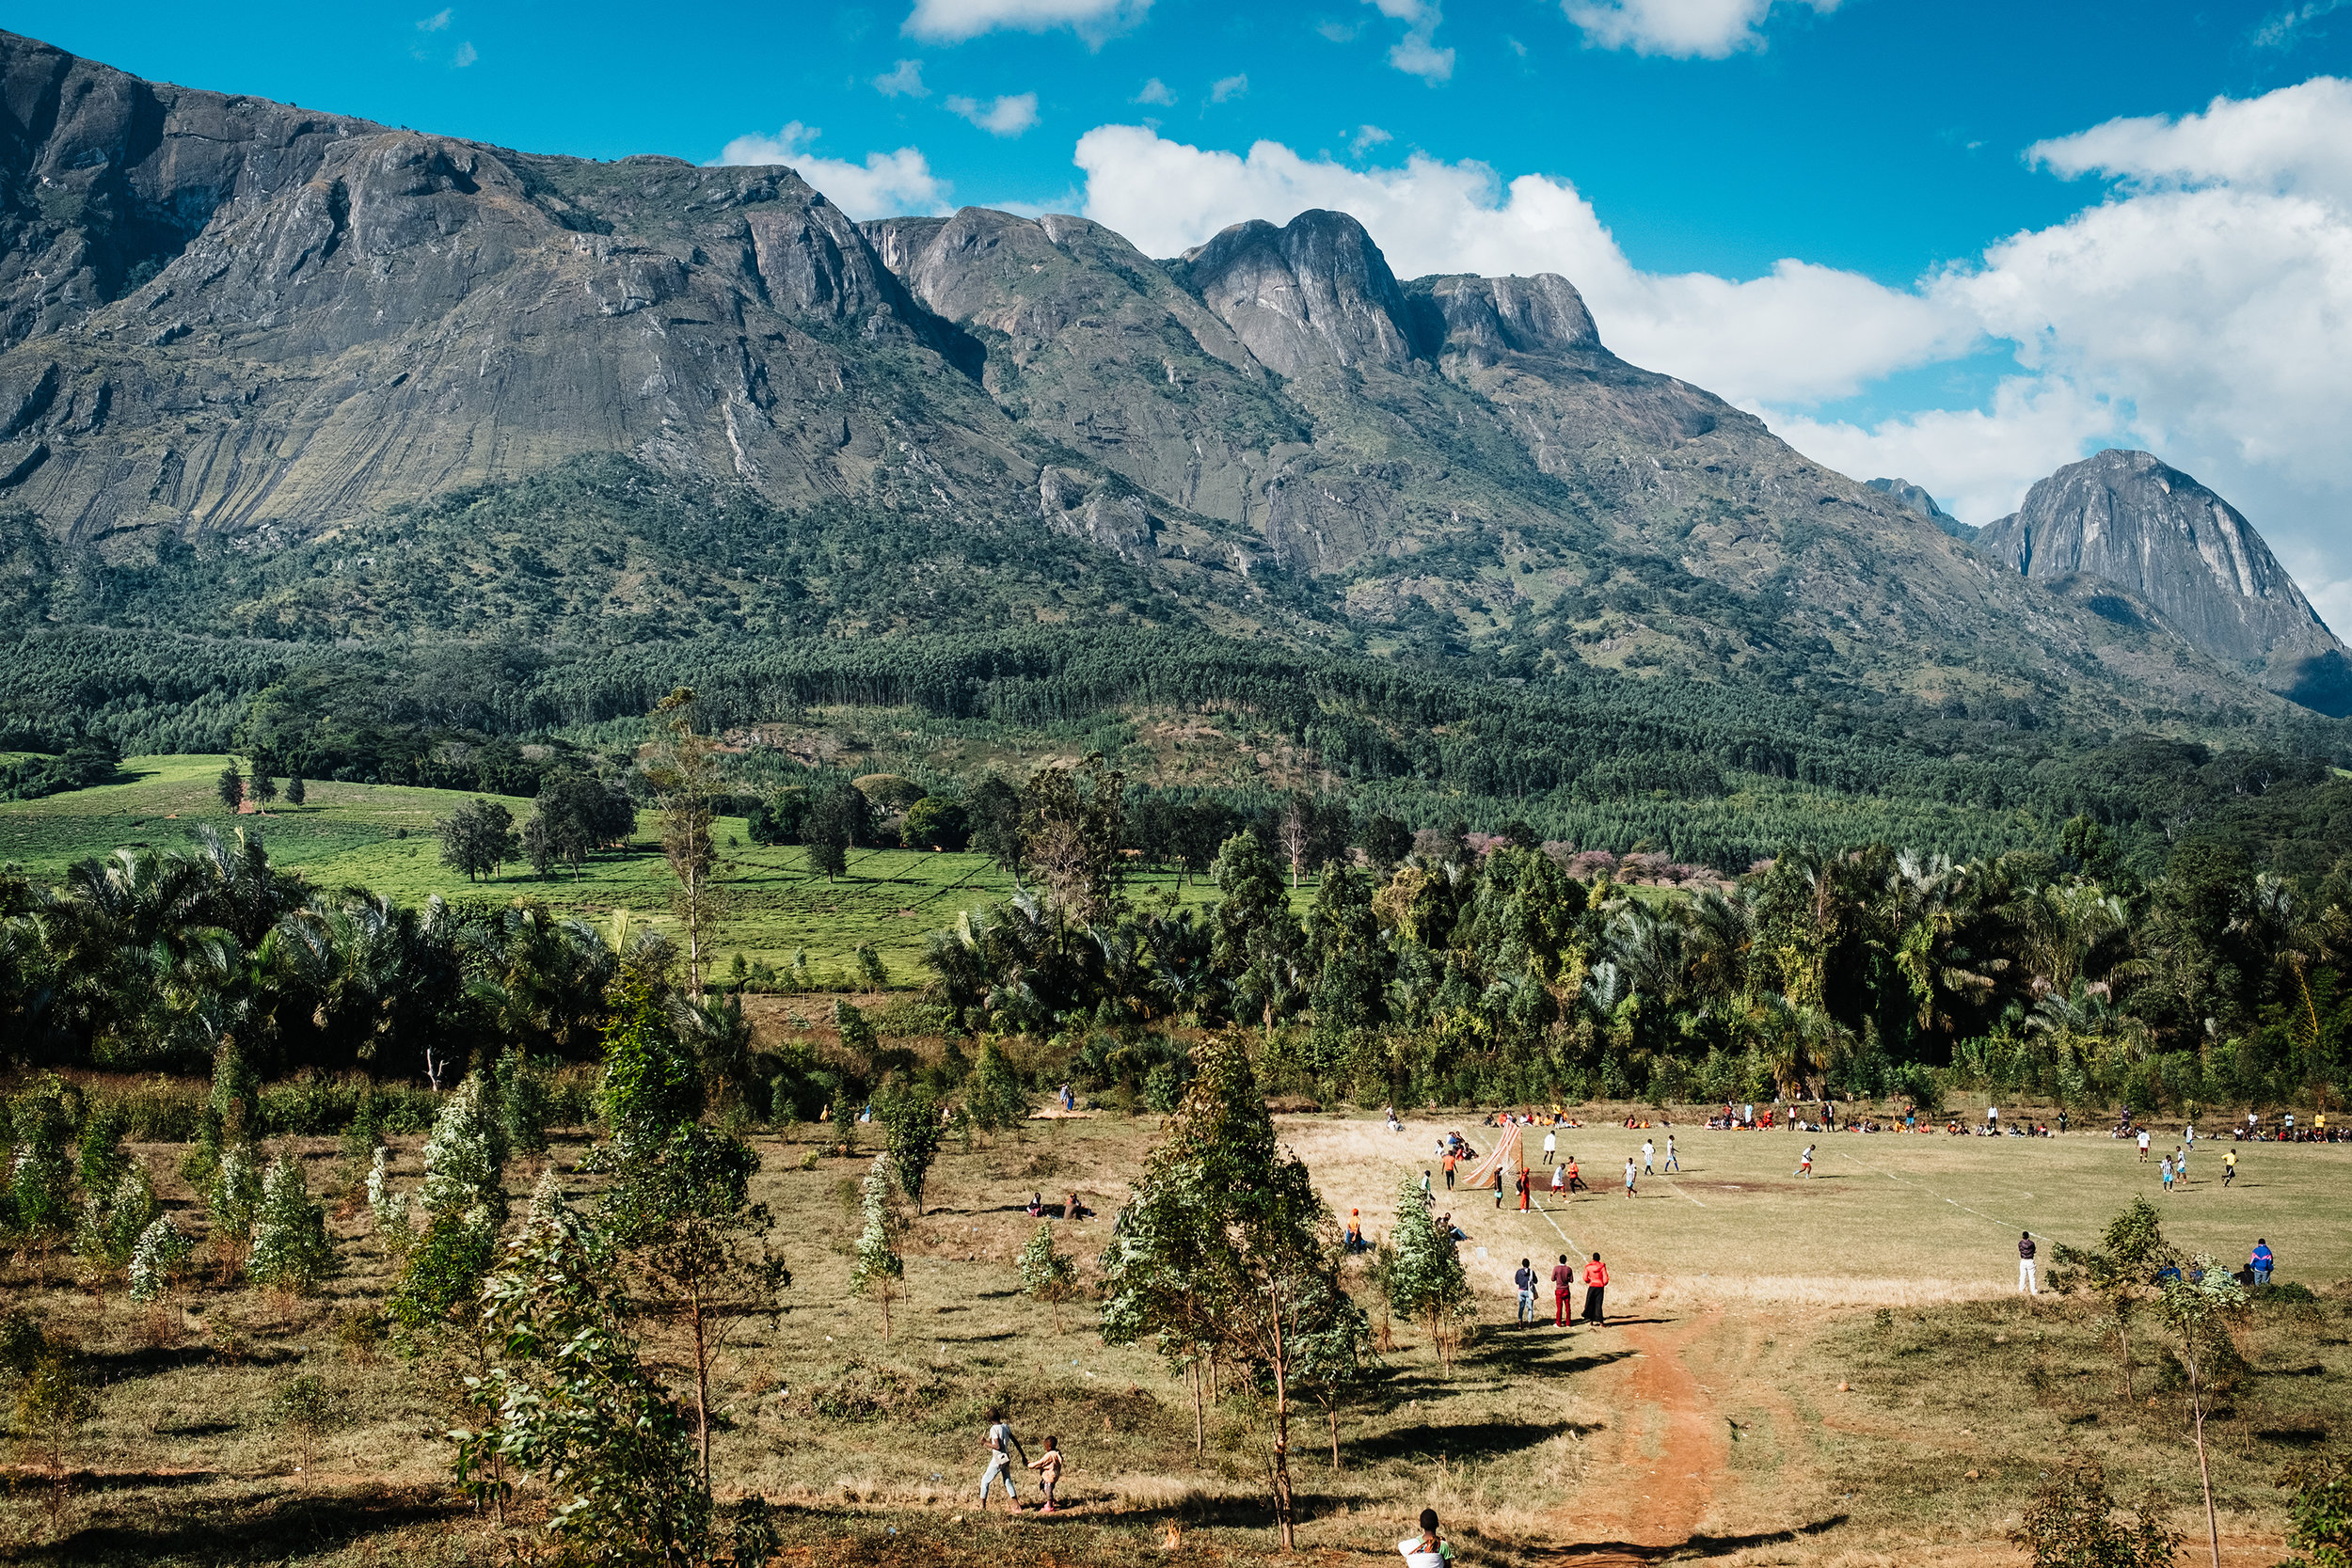 Mulanje mountain provided a stunning backdrop to the FOMO football tournament